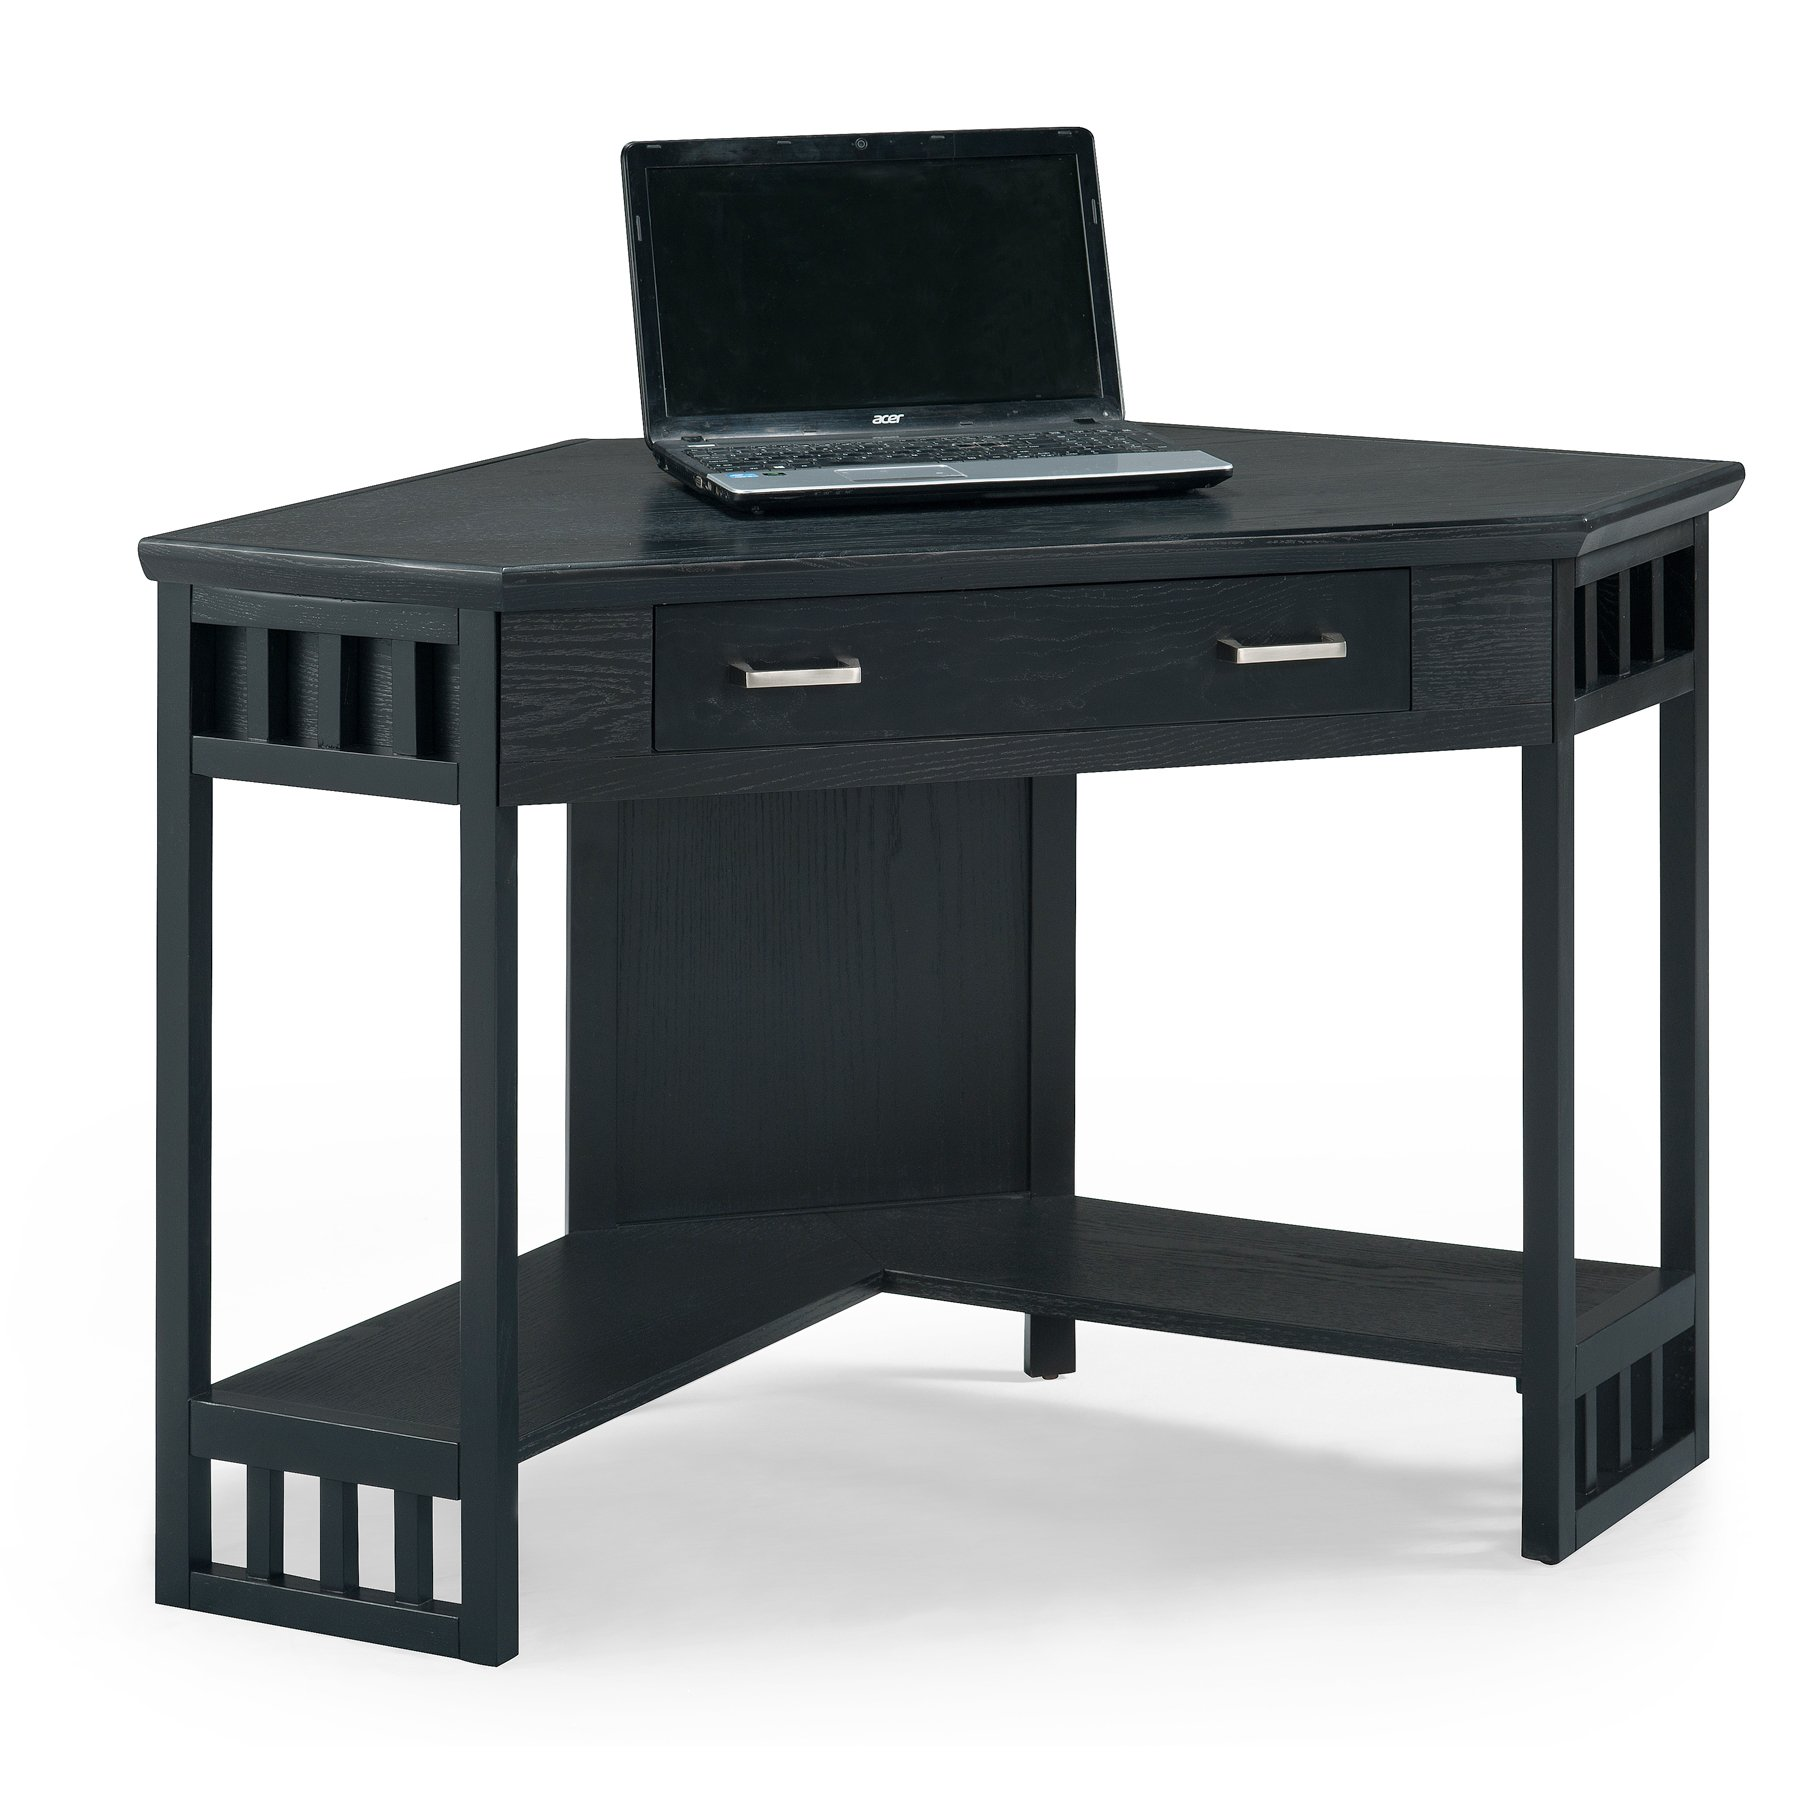 Leick Corner Computer and Writing Desk, Black Finish